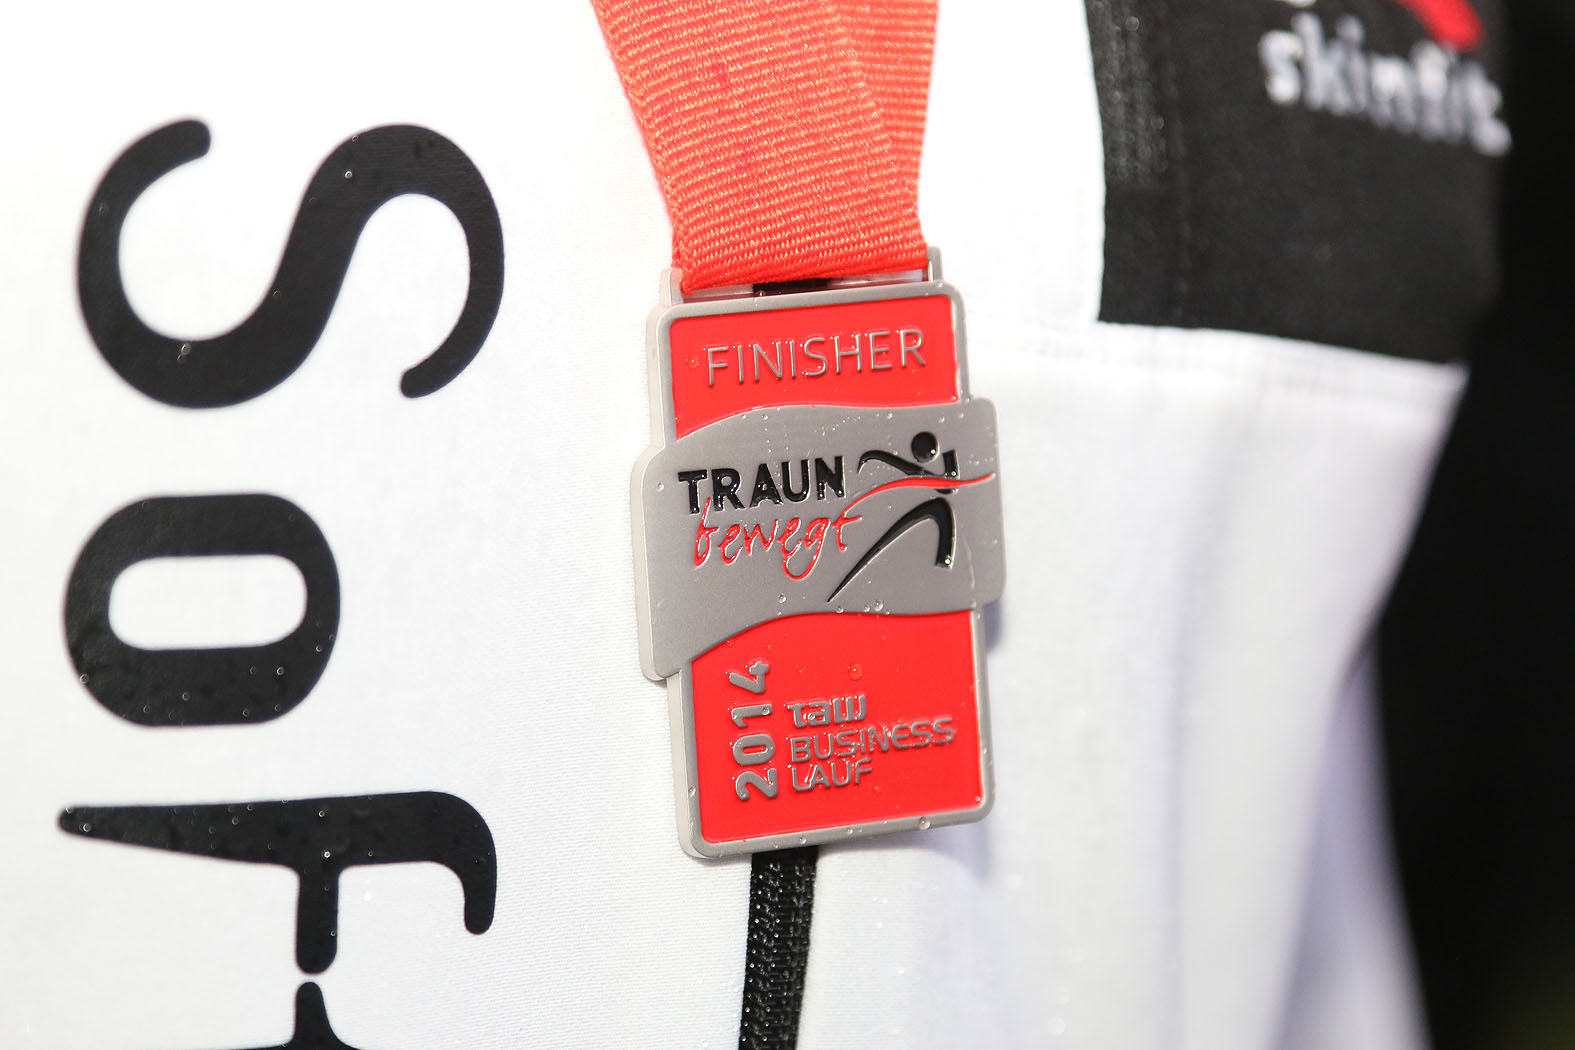 TraunBusinesslauf2014_0062_sm.jpg